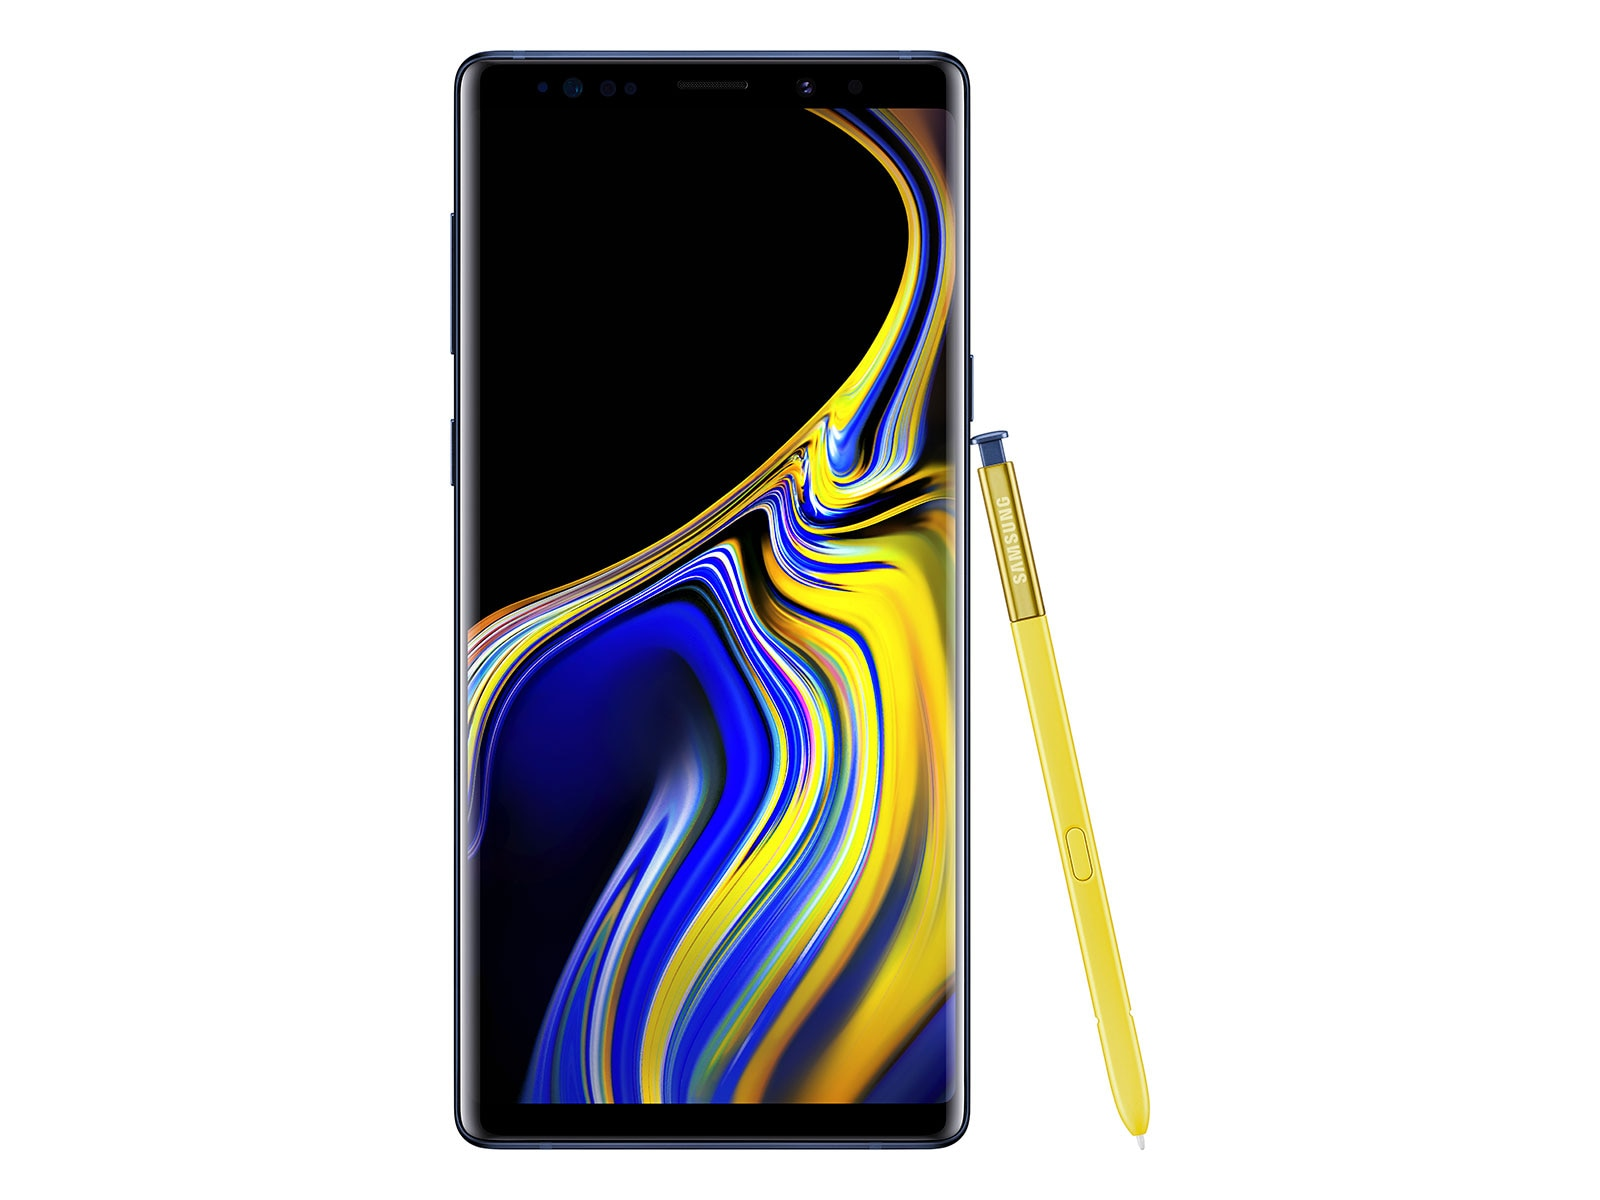 Note 3 Precio Libre Galaxy Note9 512gb Unlocked